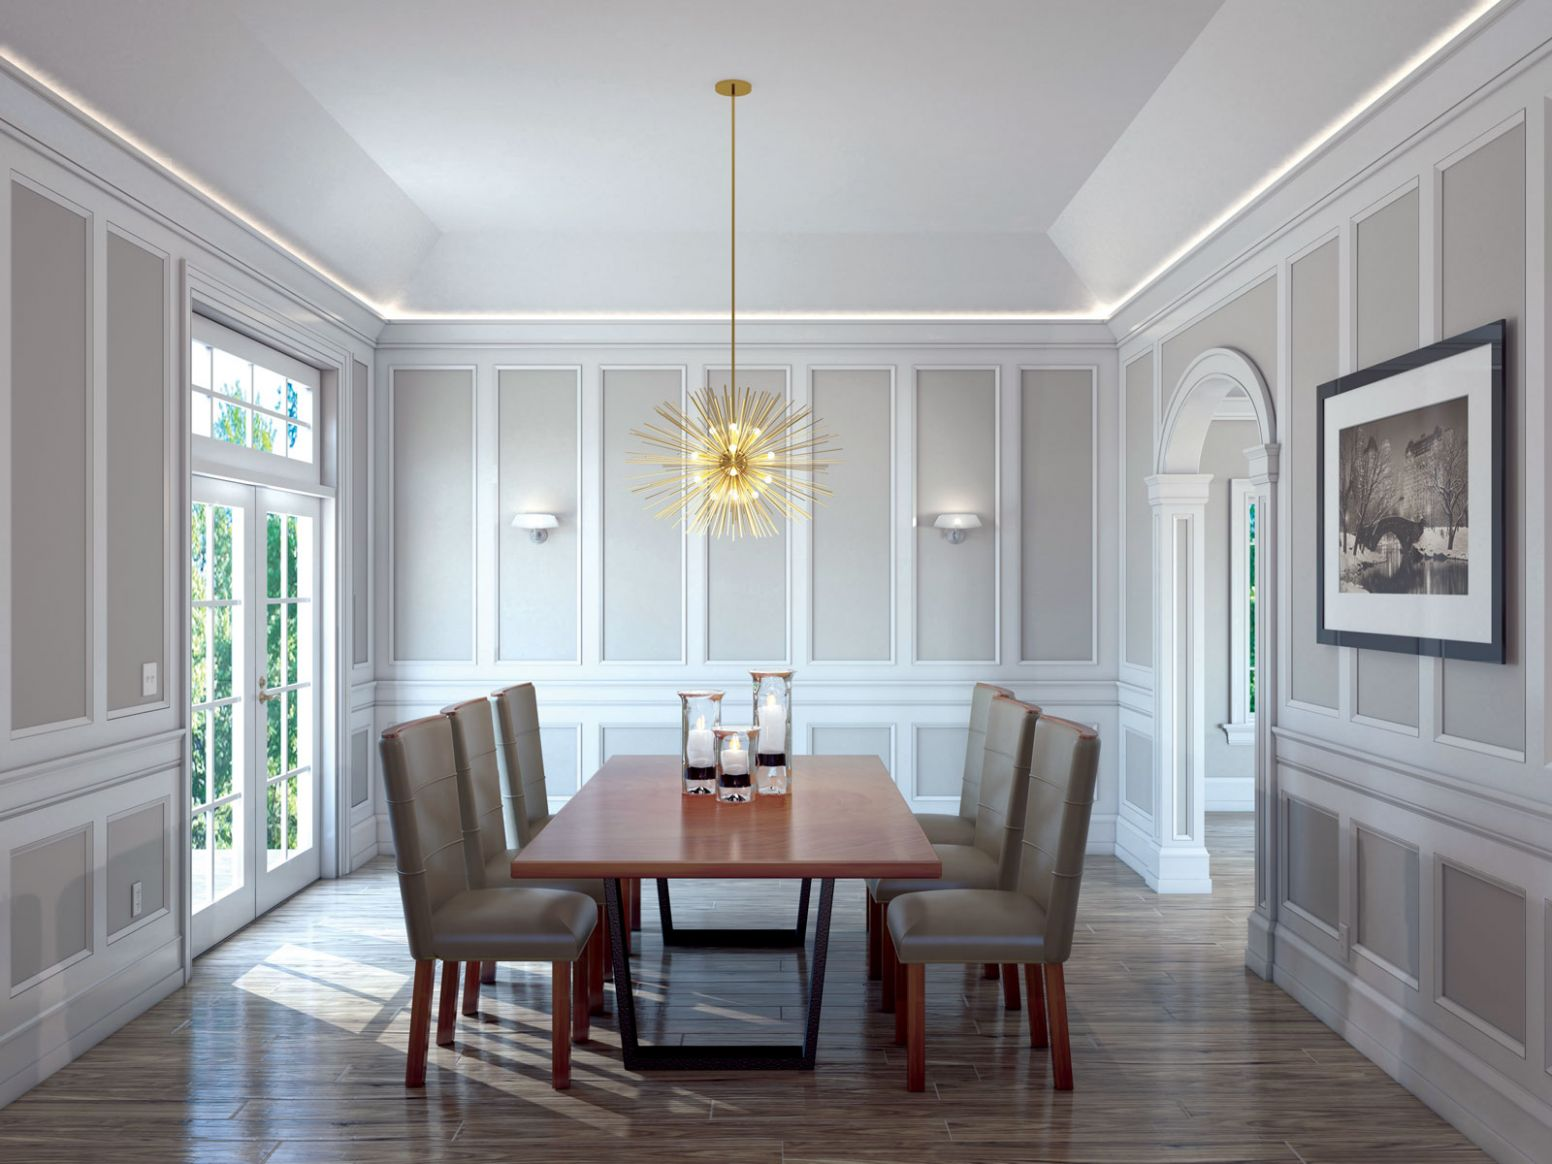 The Kensington - Dining Room - Five Star Millwork - dining room millwork ideas